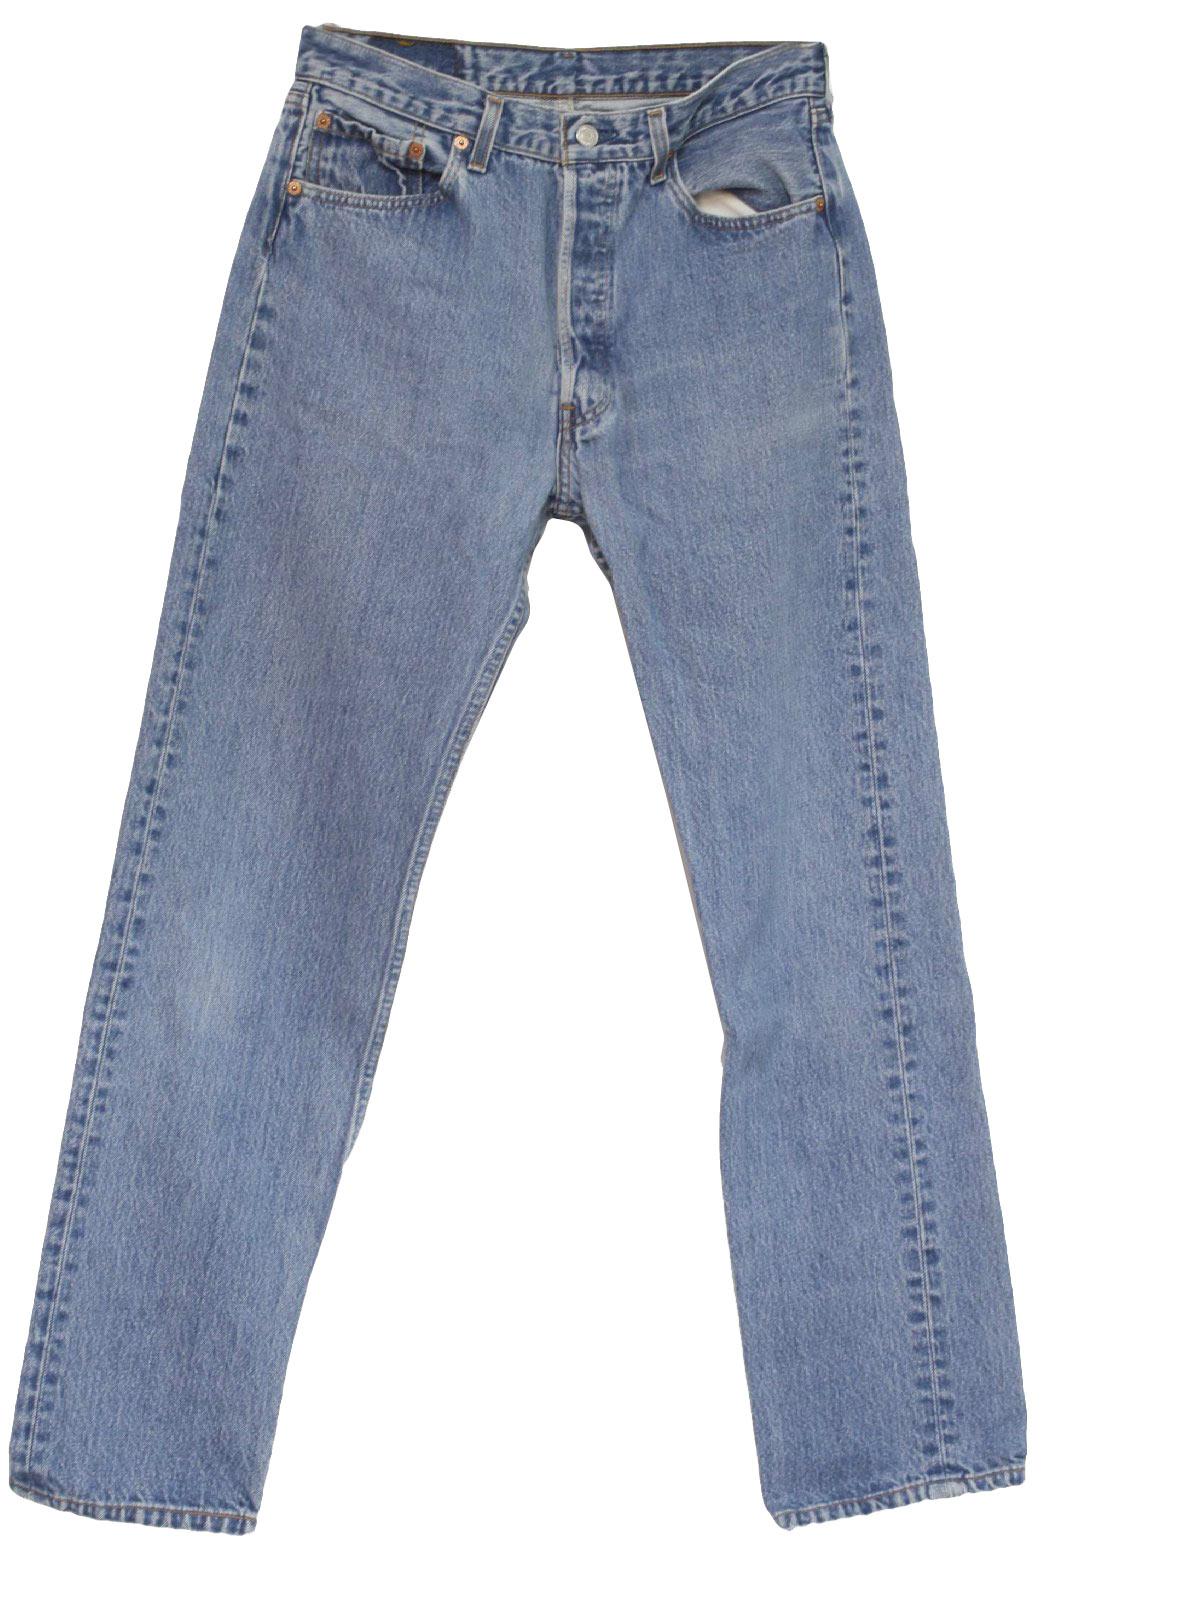 90s Jeans Womens